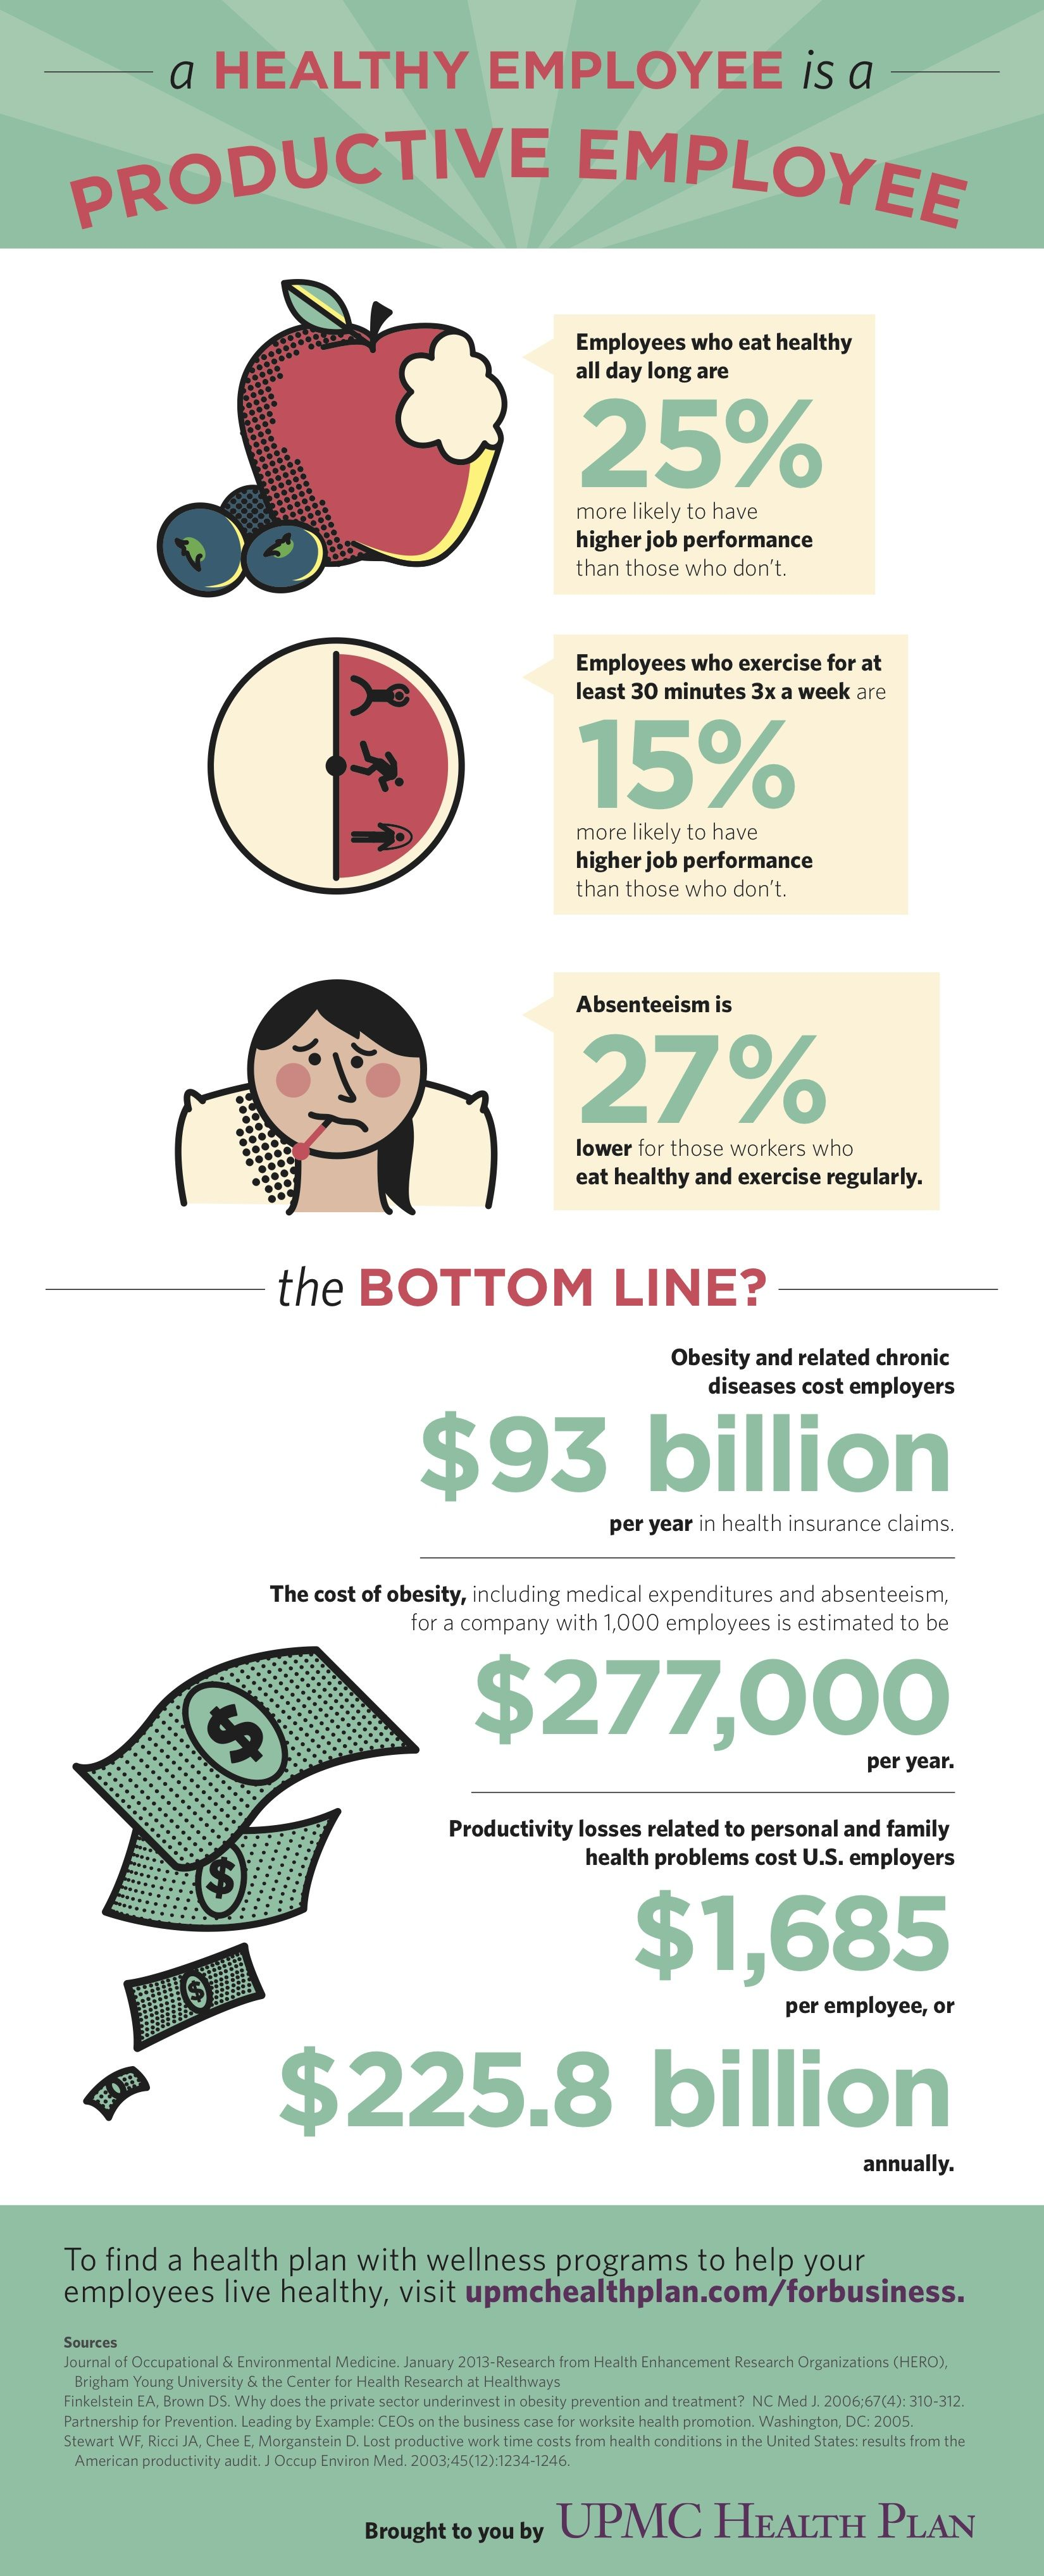 Small Business Infographic UPMC Health Plan Workplace